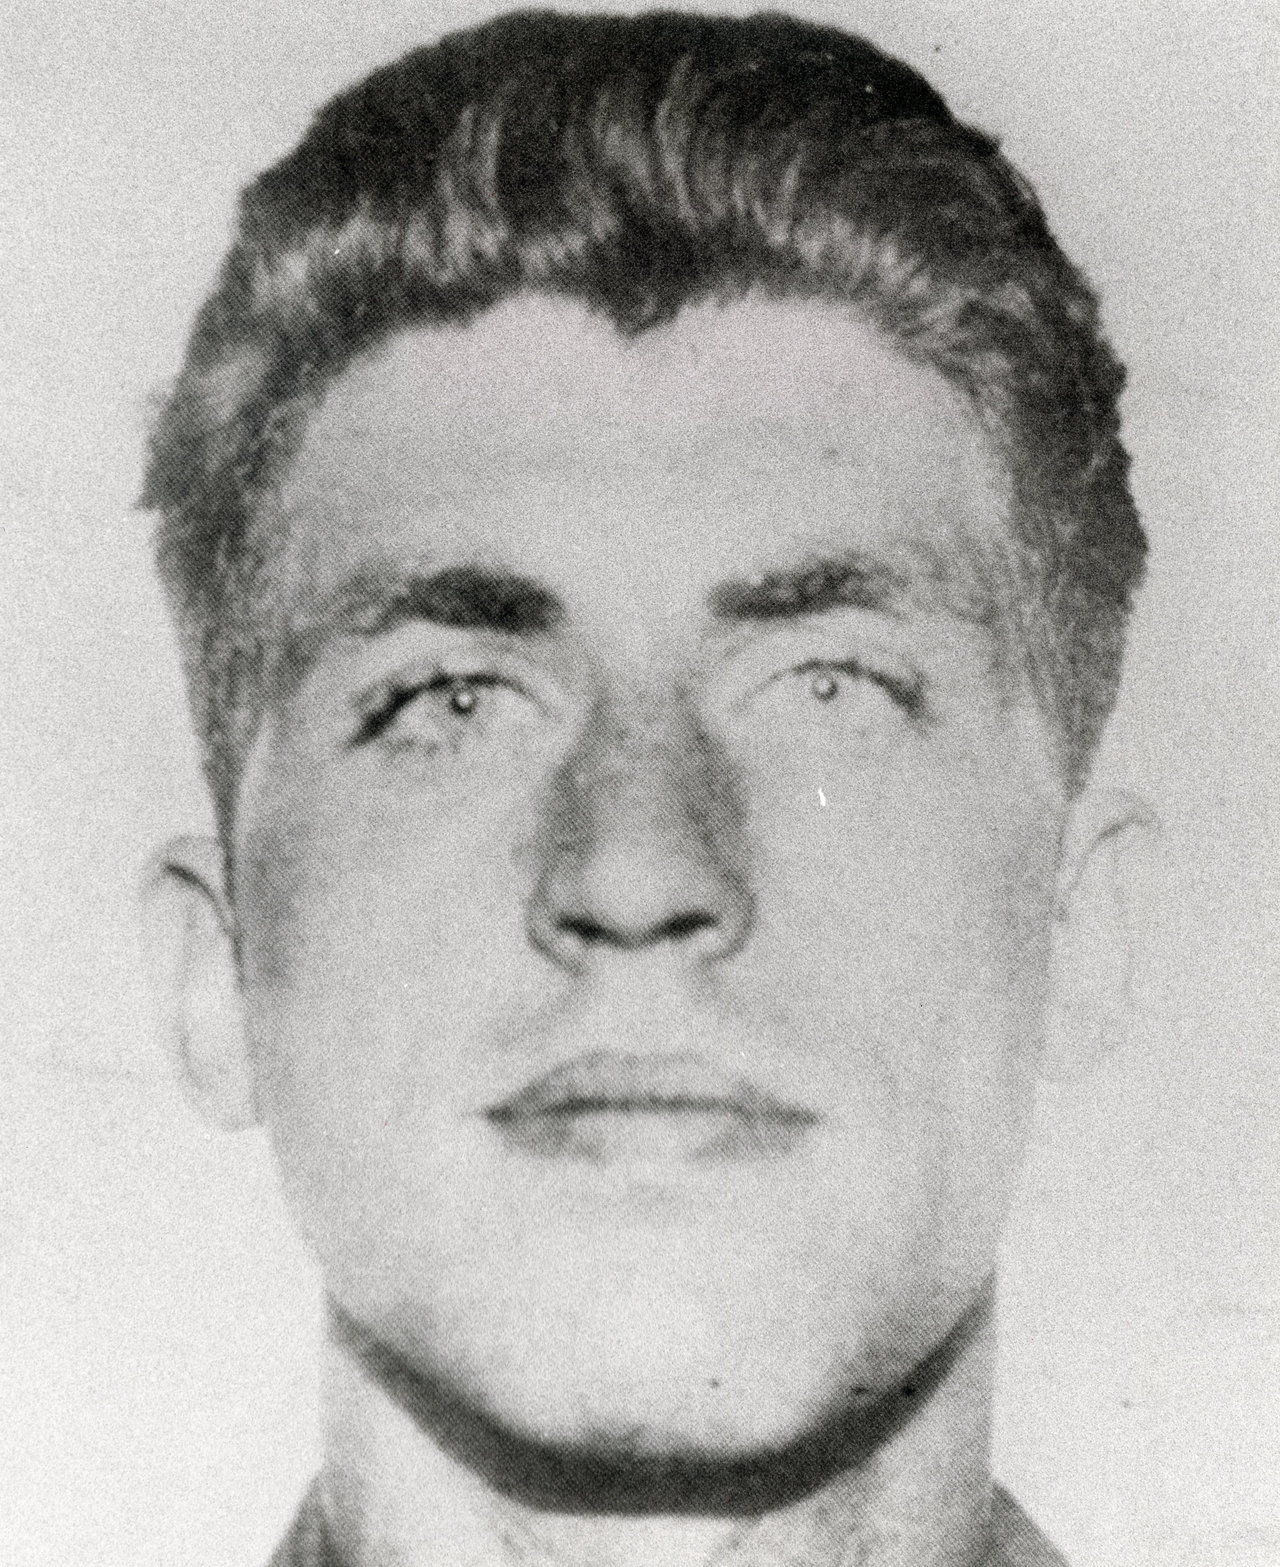 July 11, 1942 - Trooper Richard L. Hedges